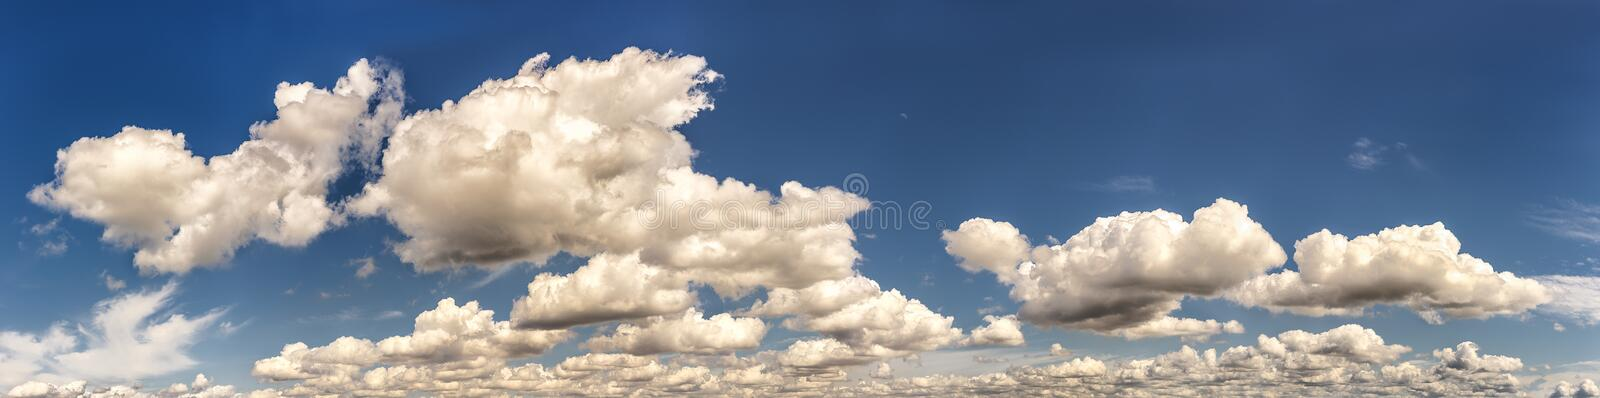 Summer clouds panorama with moon. Fluffy white summer clouds dance across a sky panorama with moon setting in background stock photography